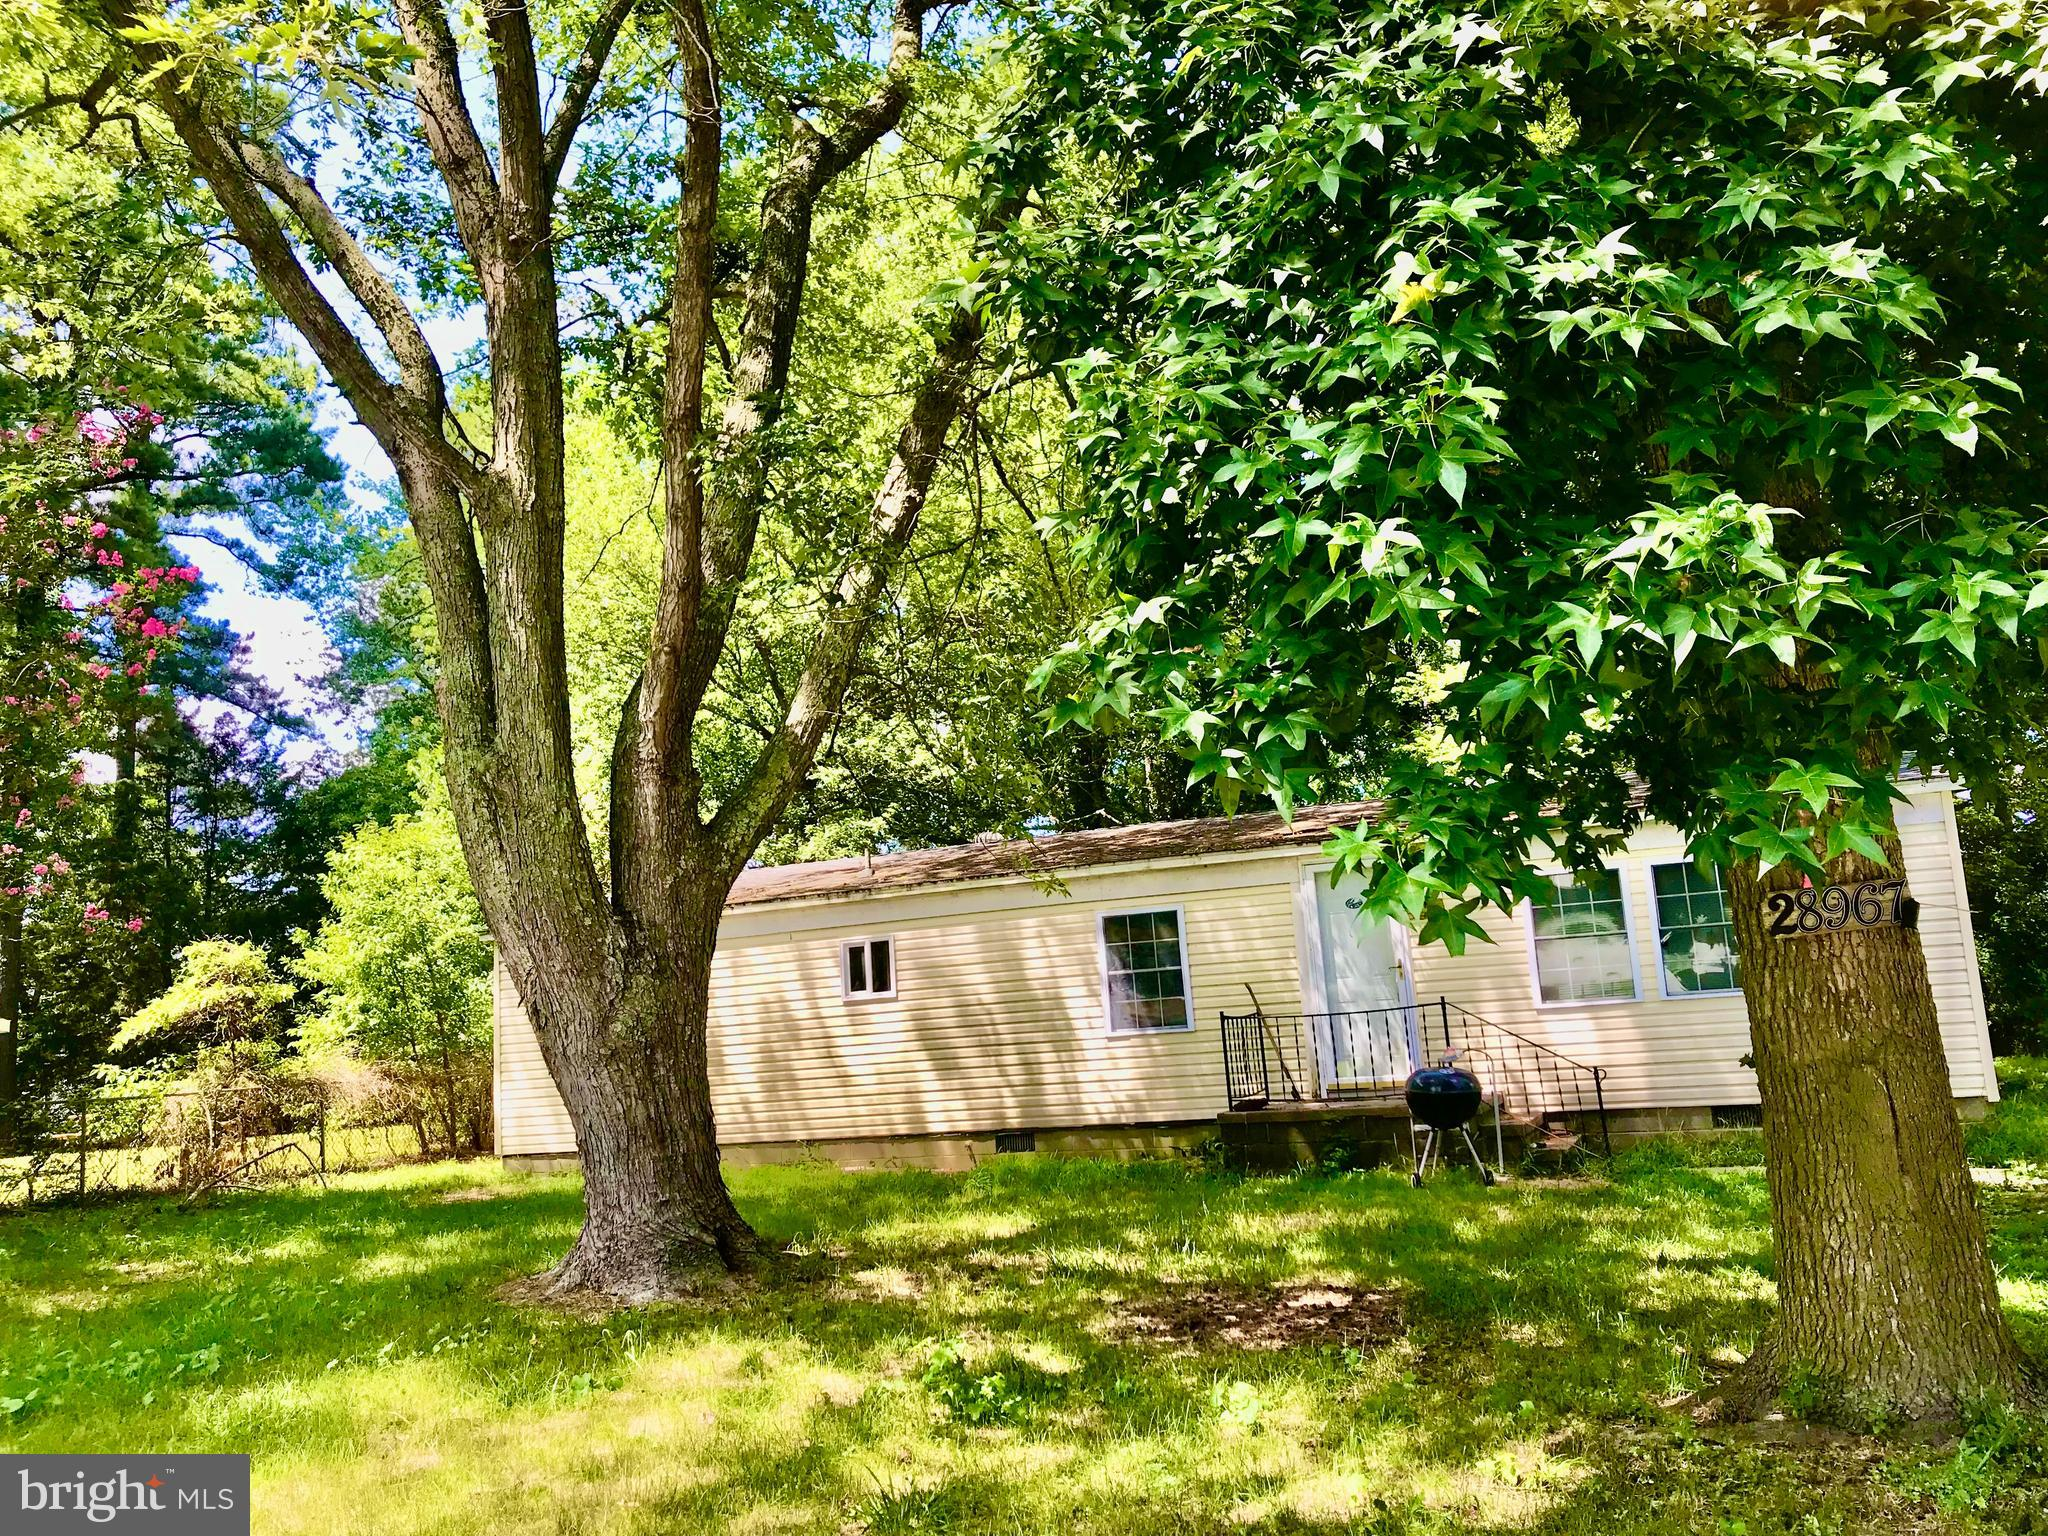 A fixer-upper waiting for your touch!  No HOA! Park your boat or RV here!  Lot is 75x150.  Home has